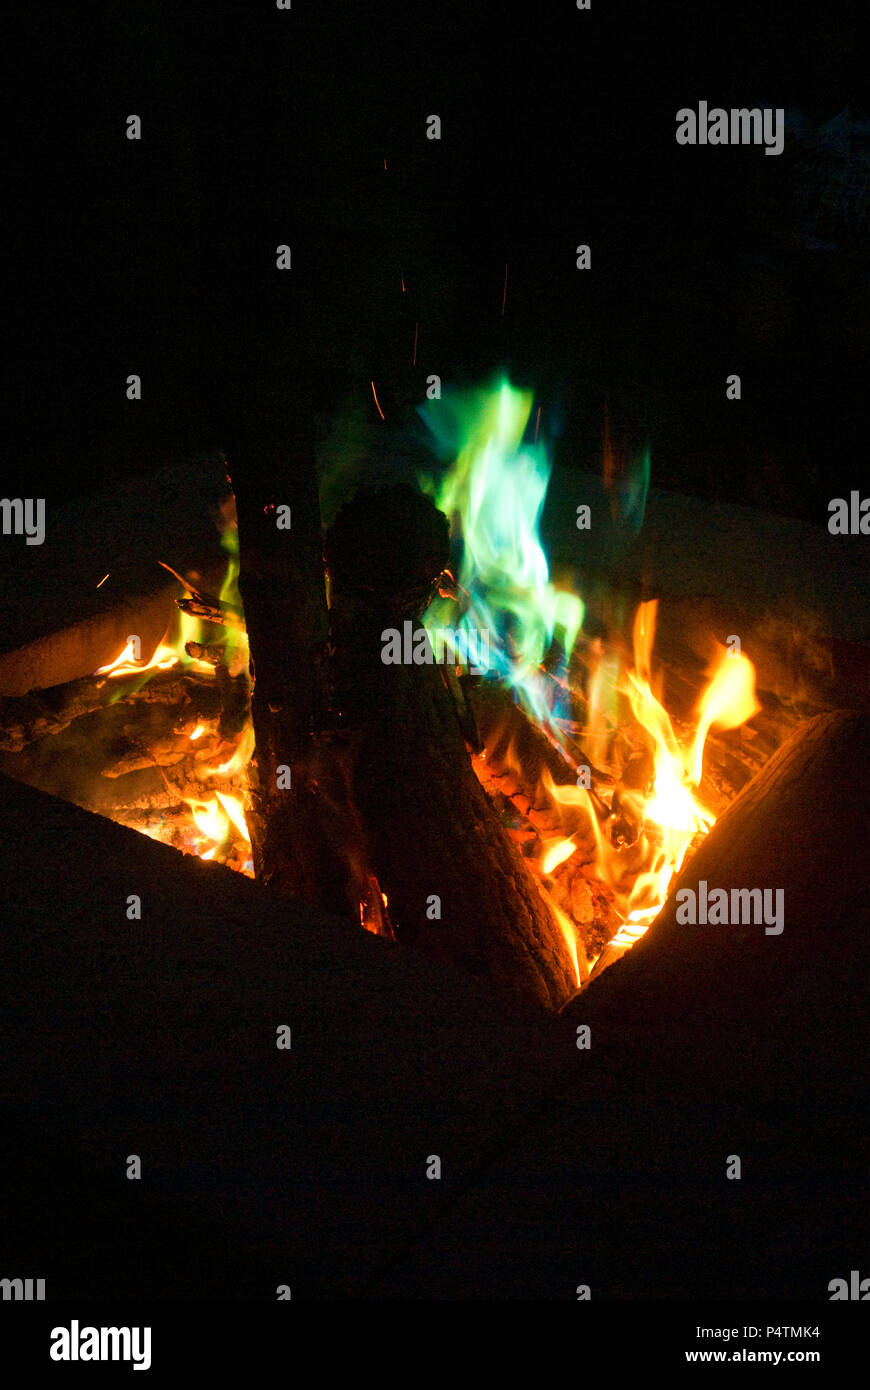 Green Flames wrap around logs inside a campfire - Stock Image